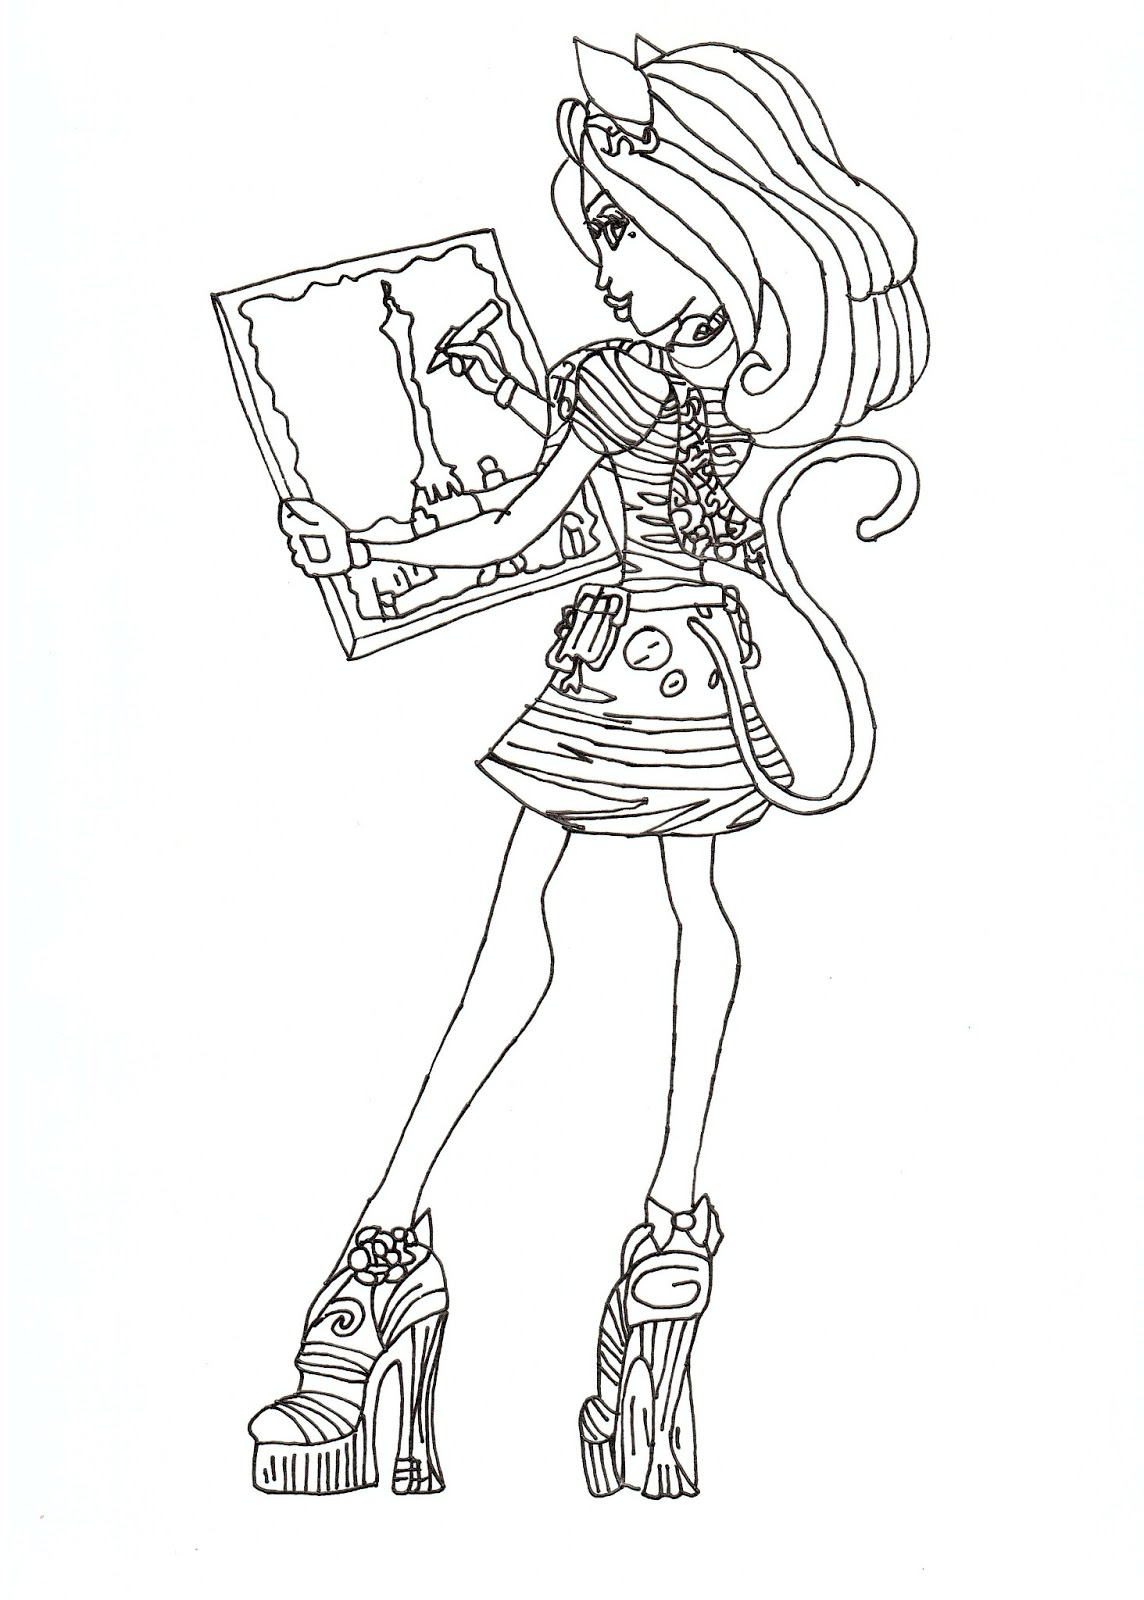 Nos Jeux De Coloriage Monster High À Imprimer Gratuit serapportantà Monster High Jeux De Coloriage